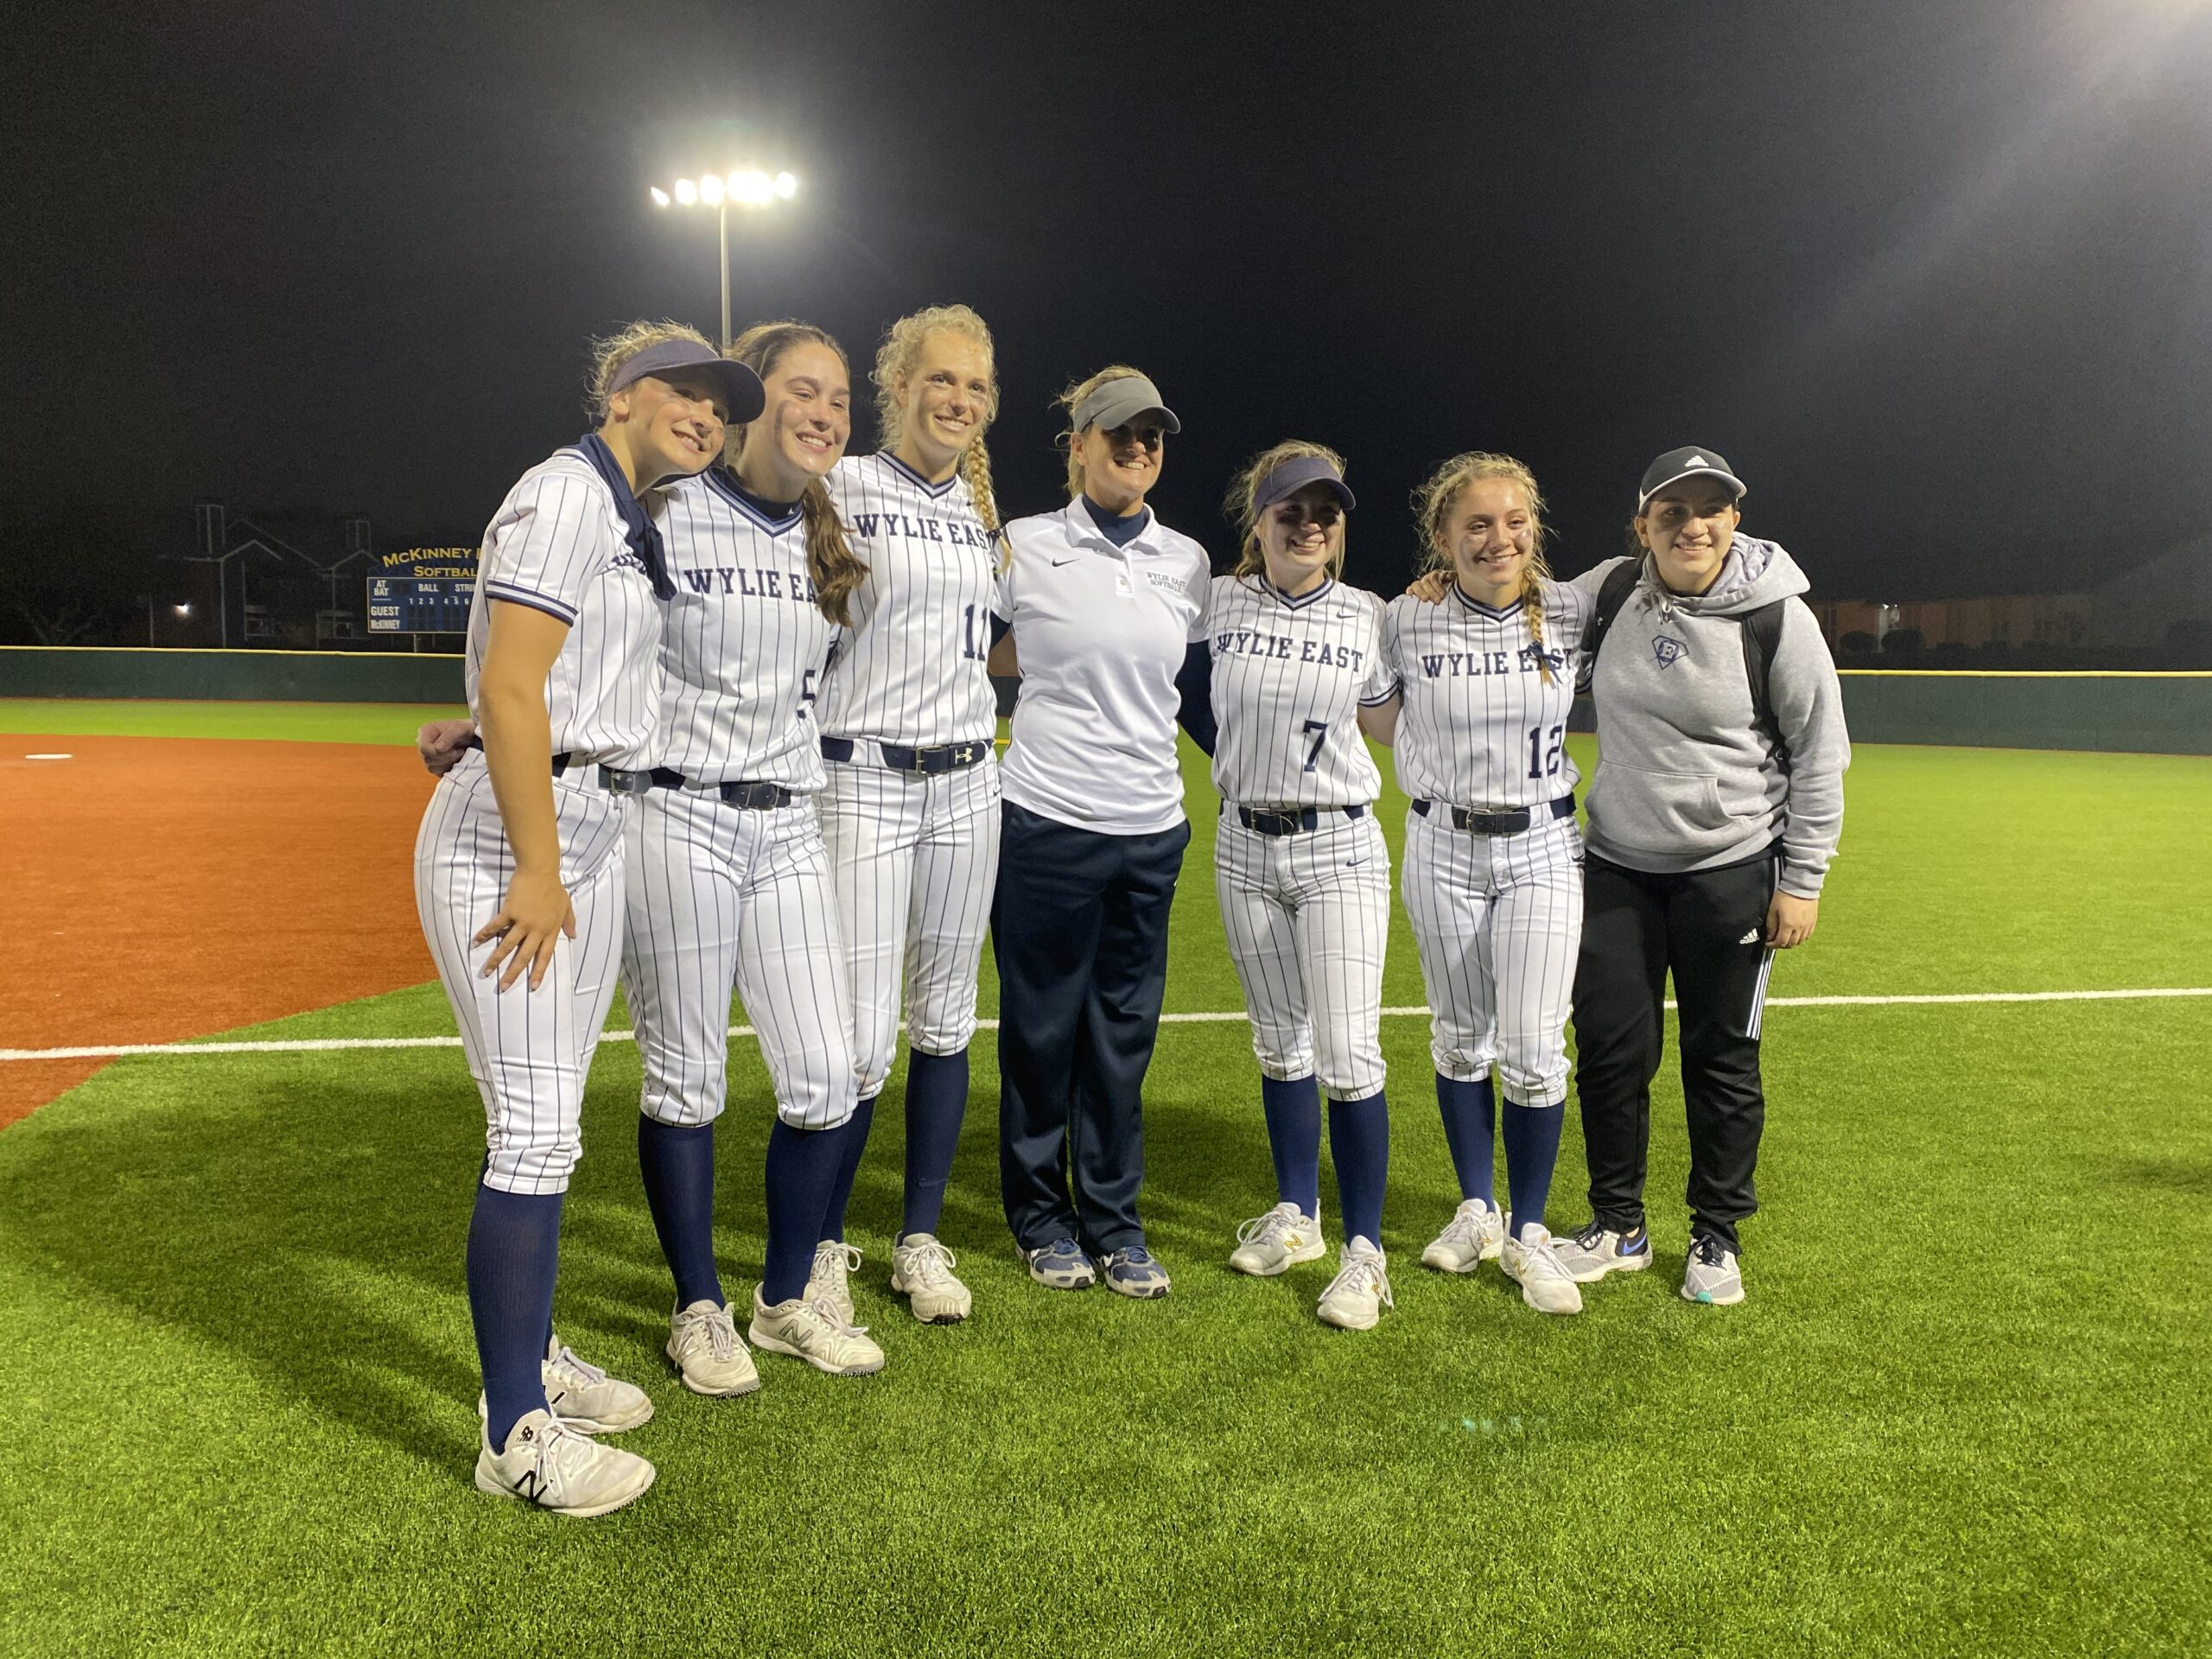 Lady Raiders lose opening playoff series to Frisco Memorial